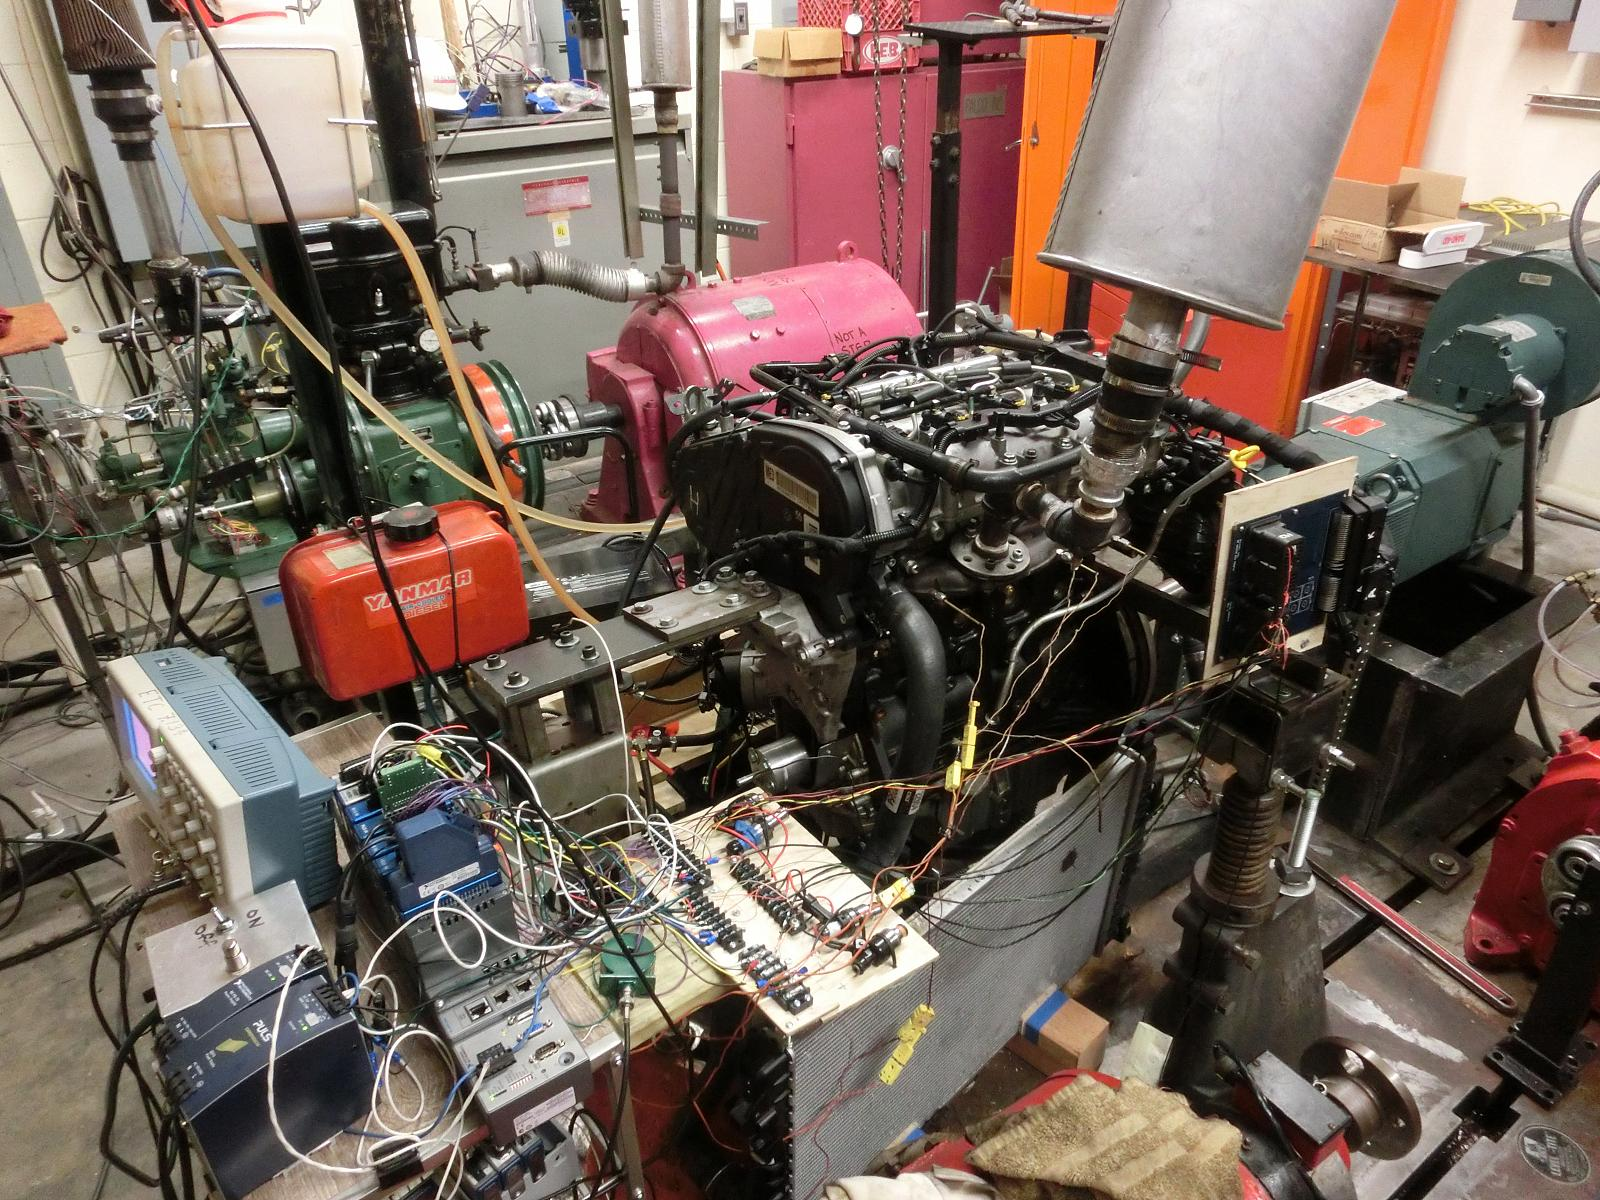 large machine diesel engine inside of a lab